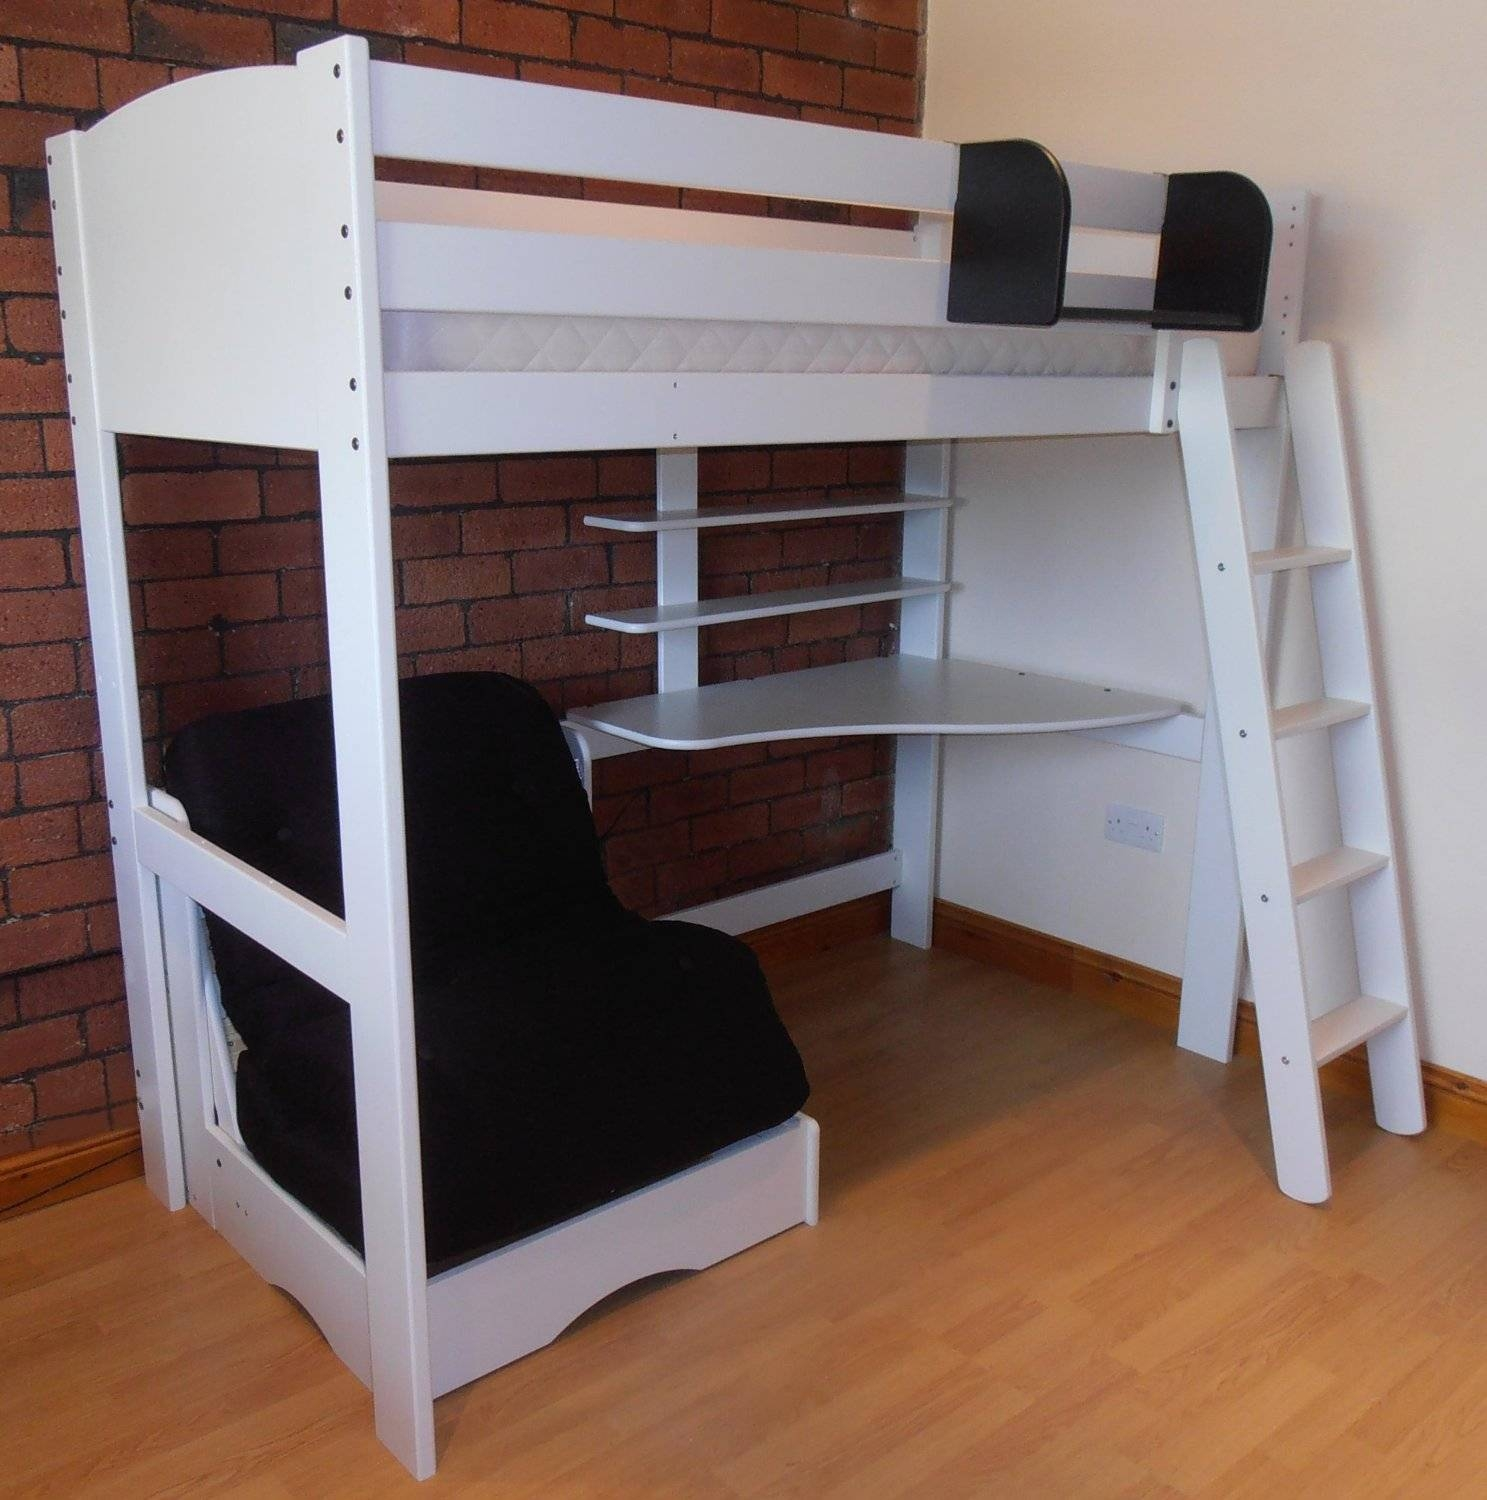 Loft Bed With Futon Underneath And Color Image Of Beds Desk ~ Loversiq Inside Bunk Bed With Sofas Underneath (View 9 of 15)